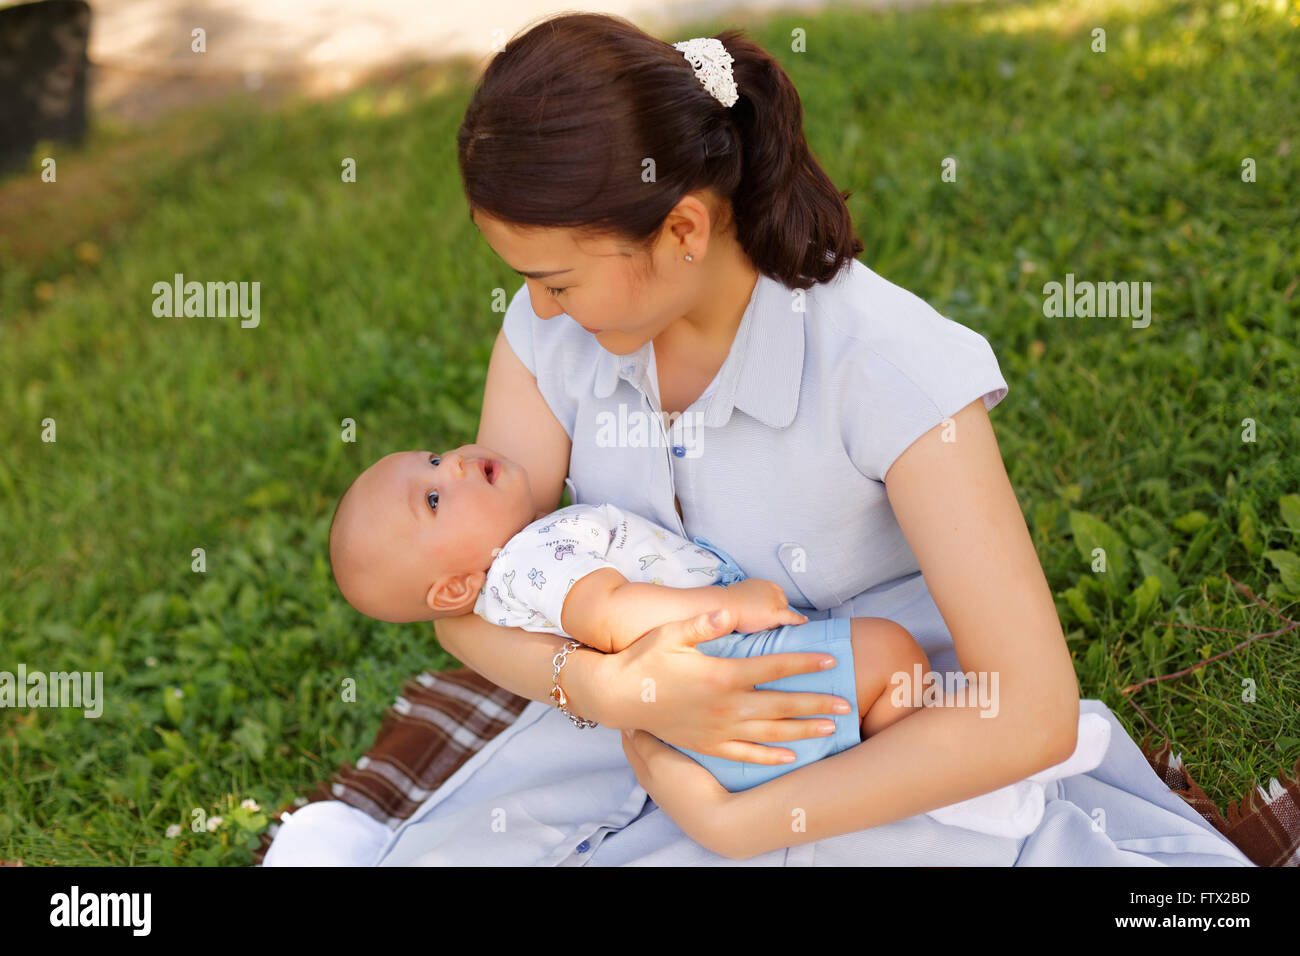 431759da41c0 cute baby boy with mother in the park Stock Photo  101376225 - Alamy